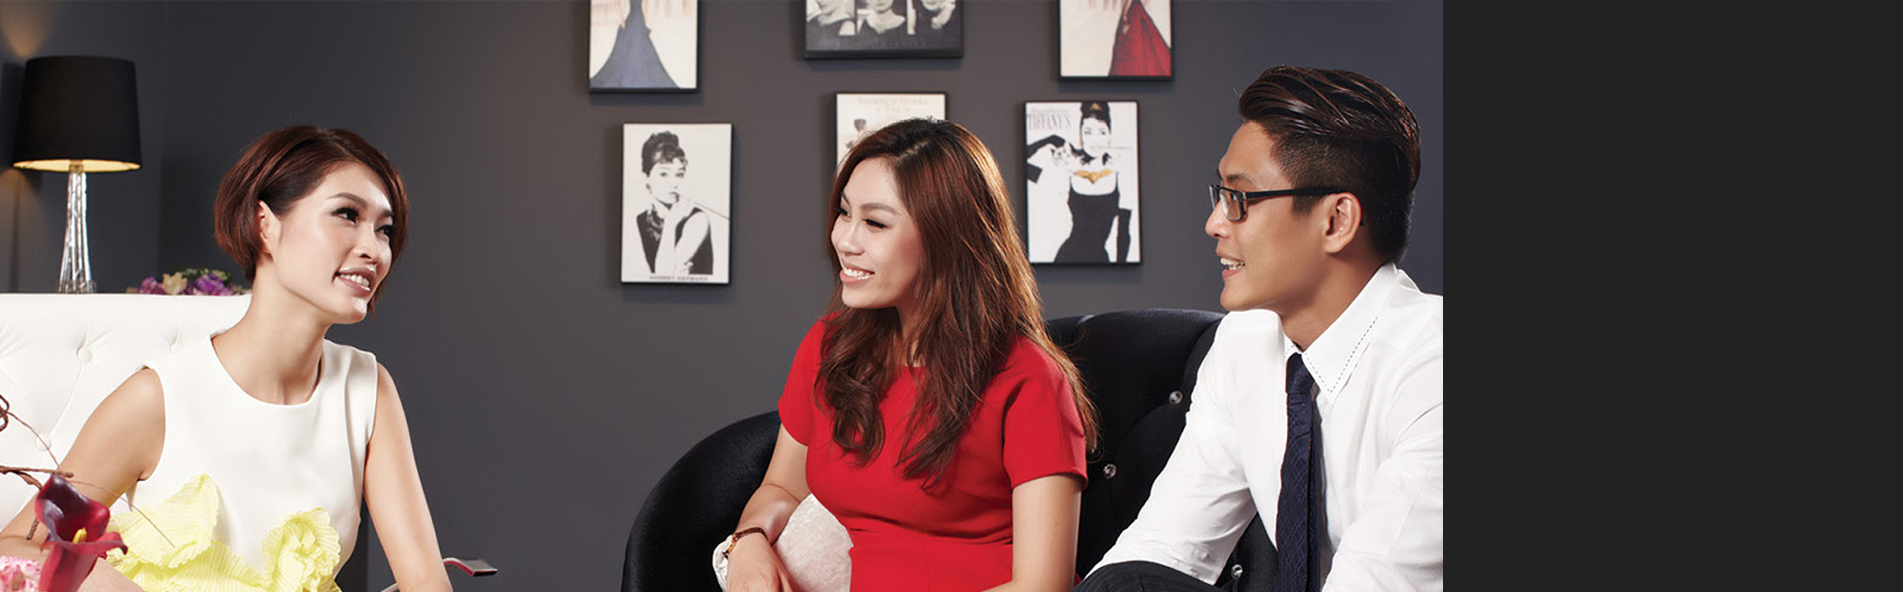 revival medical clinic amber chia interview